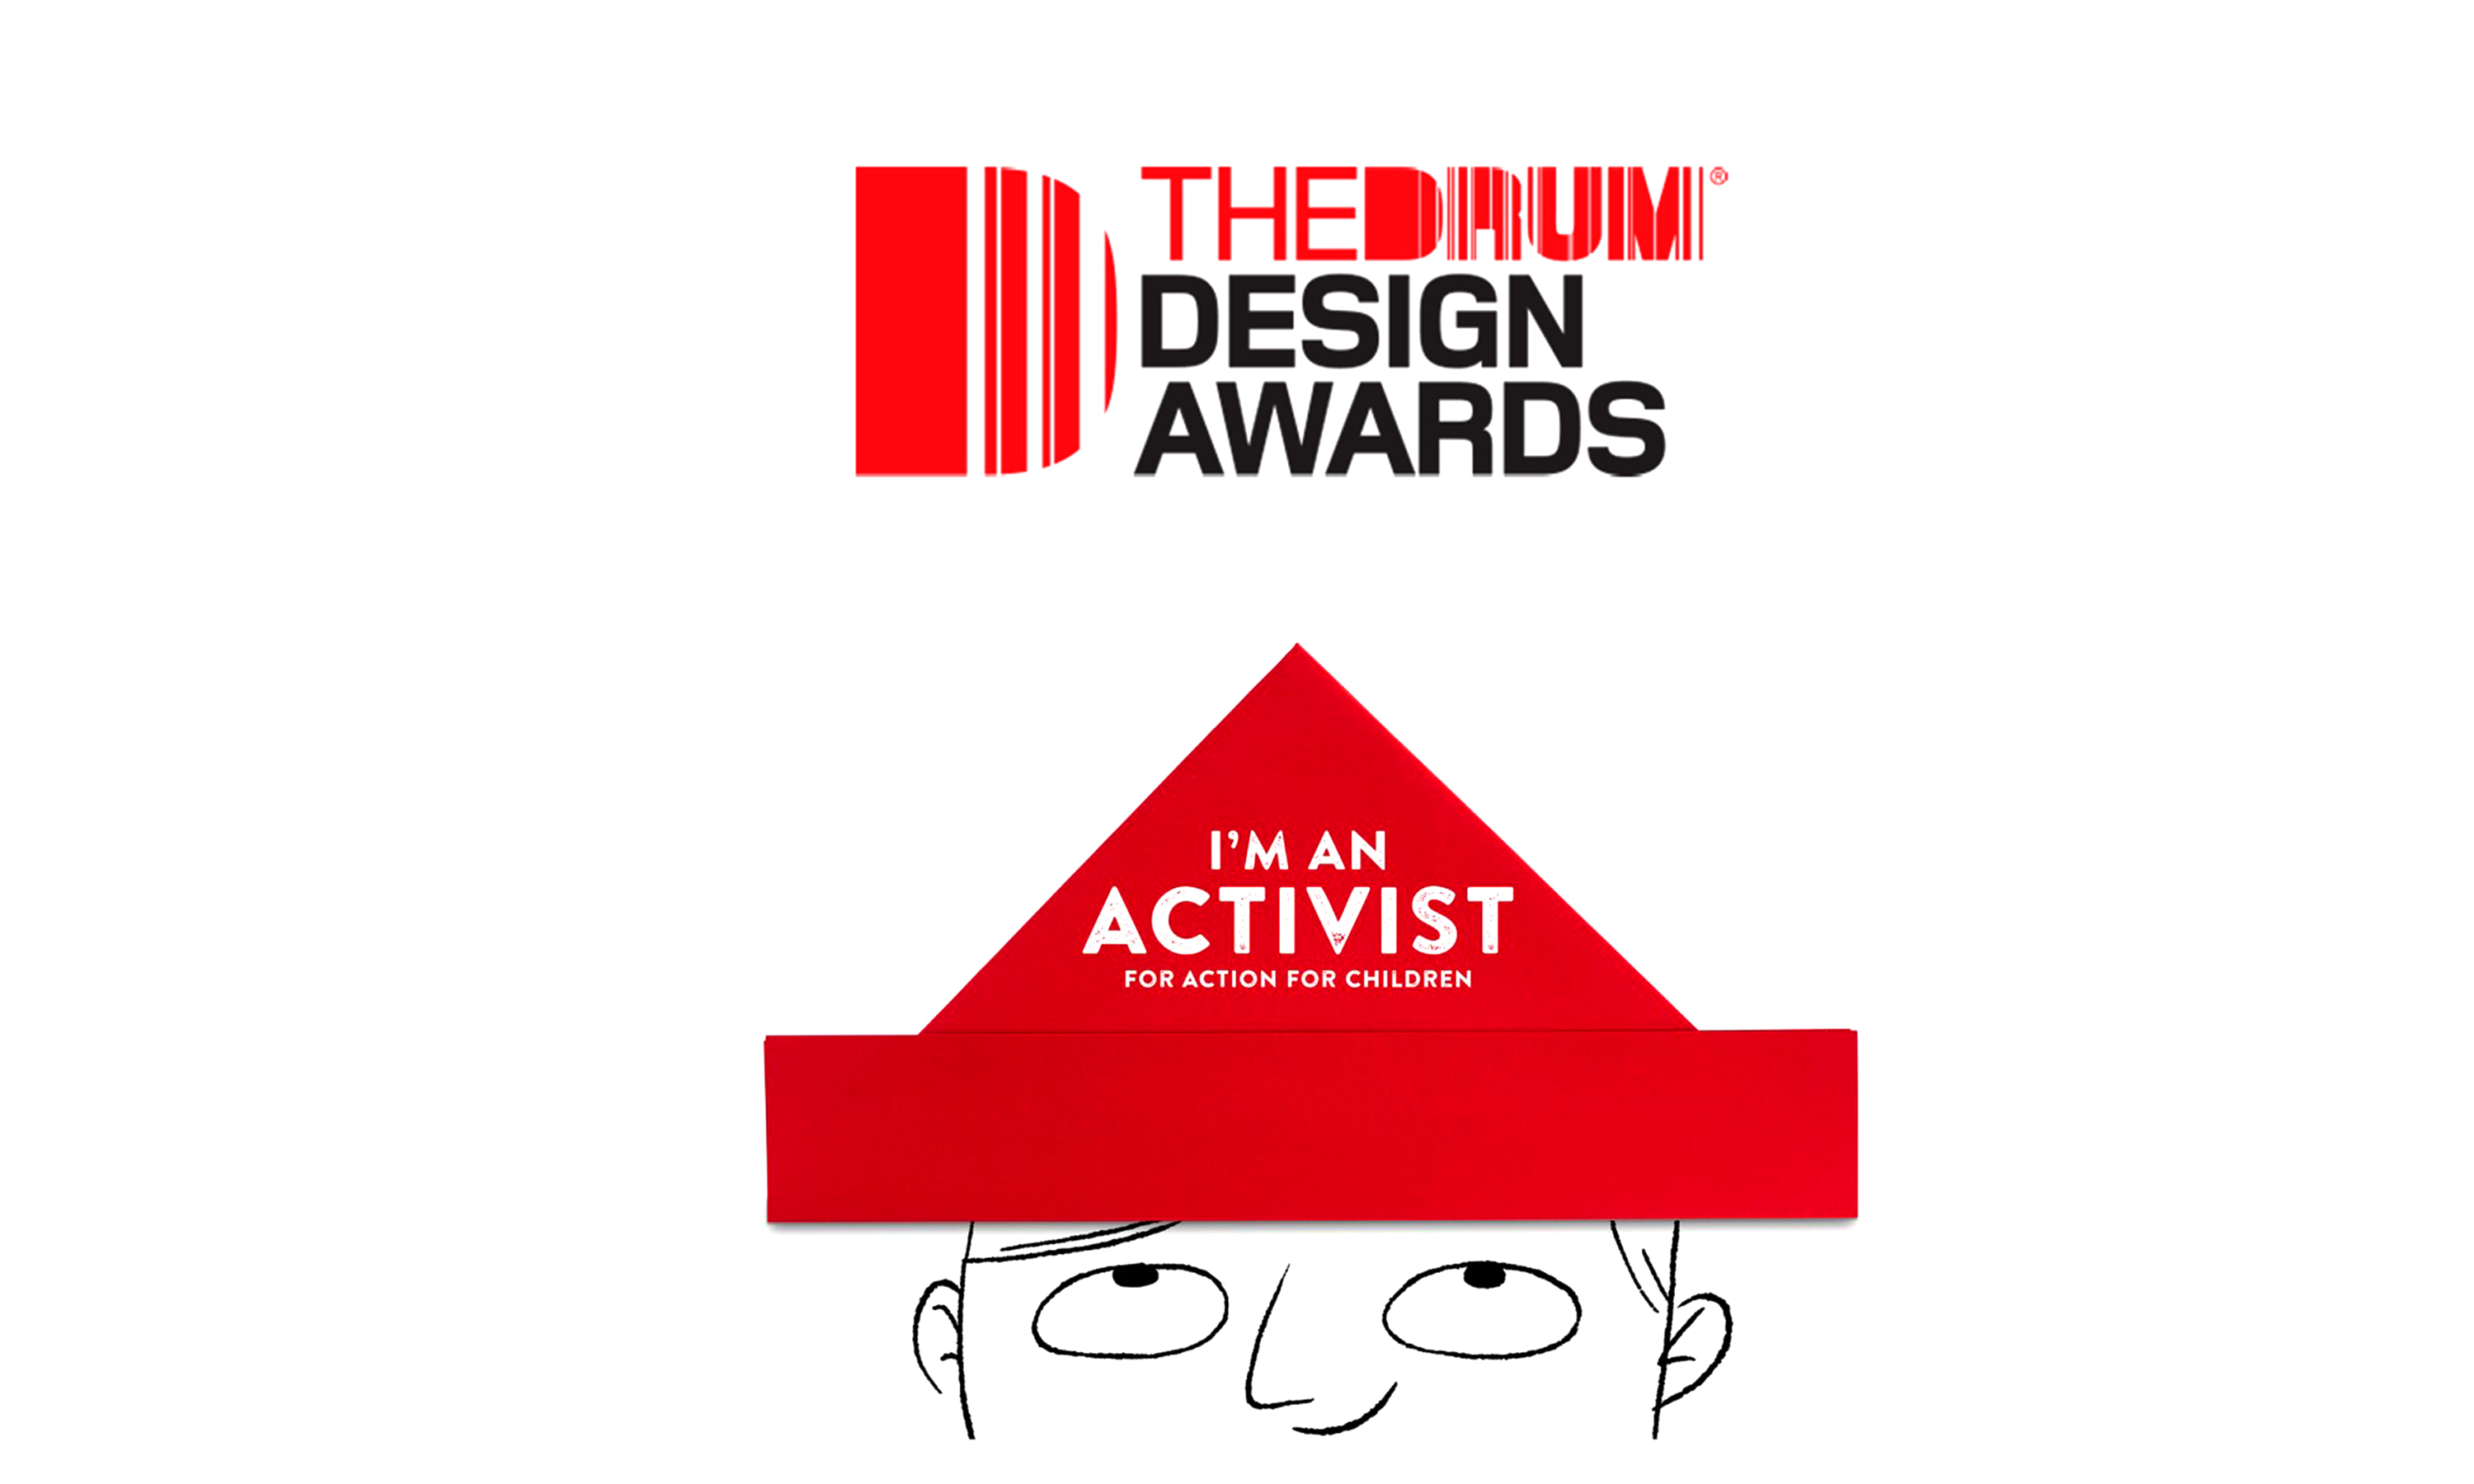 Neon-are-2017-Drum-Design-Awards-finalists-for-Action-for-Children-brand-campiagn-and-moving-image